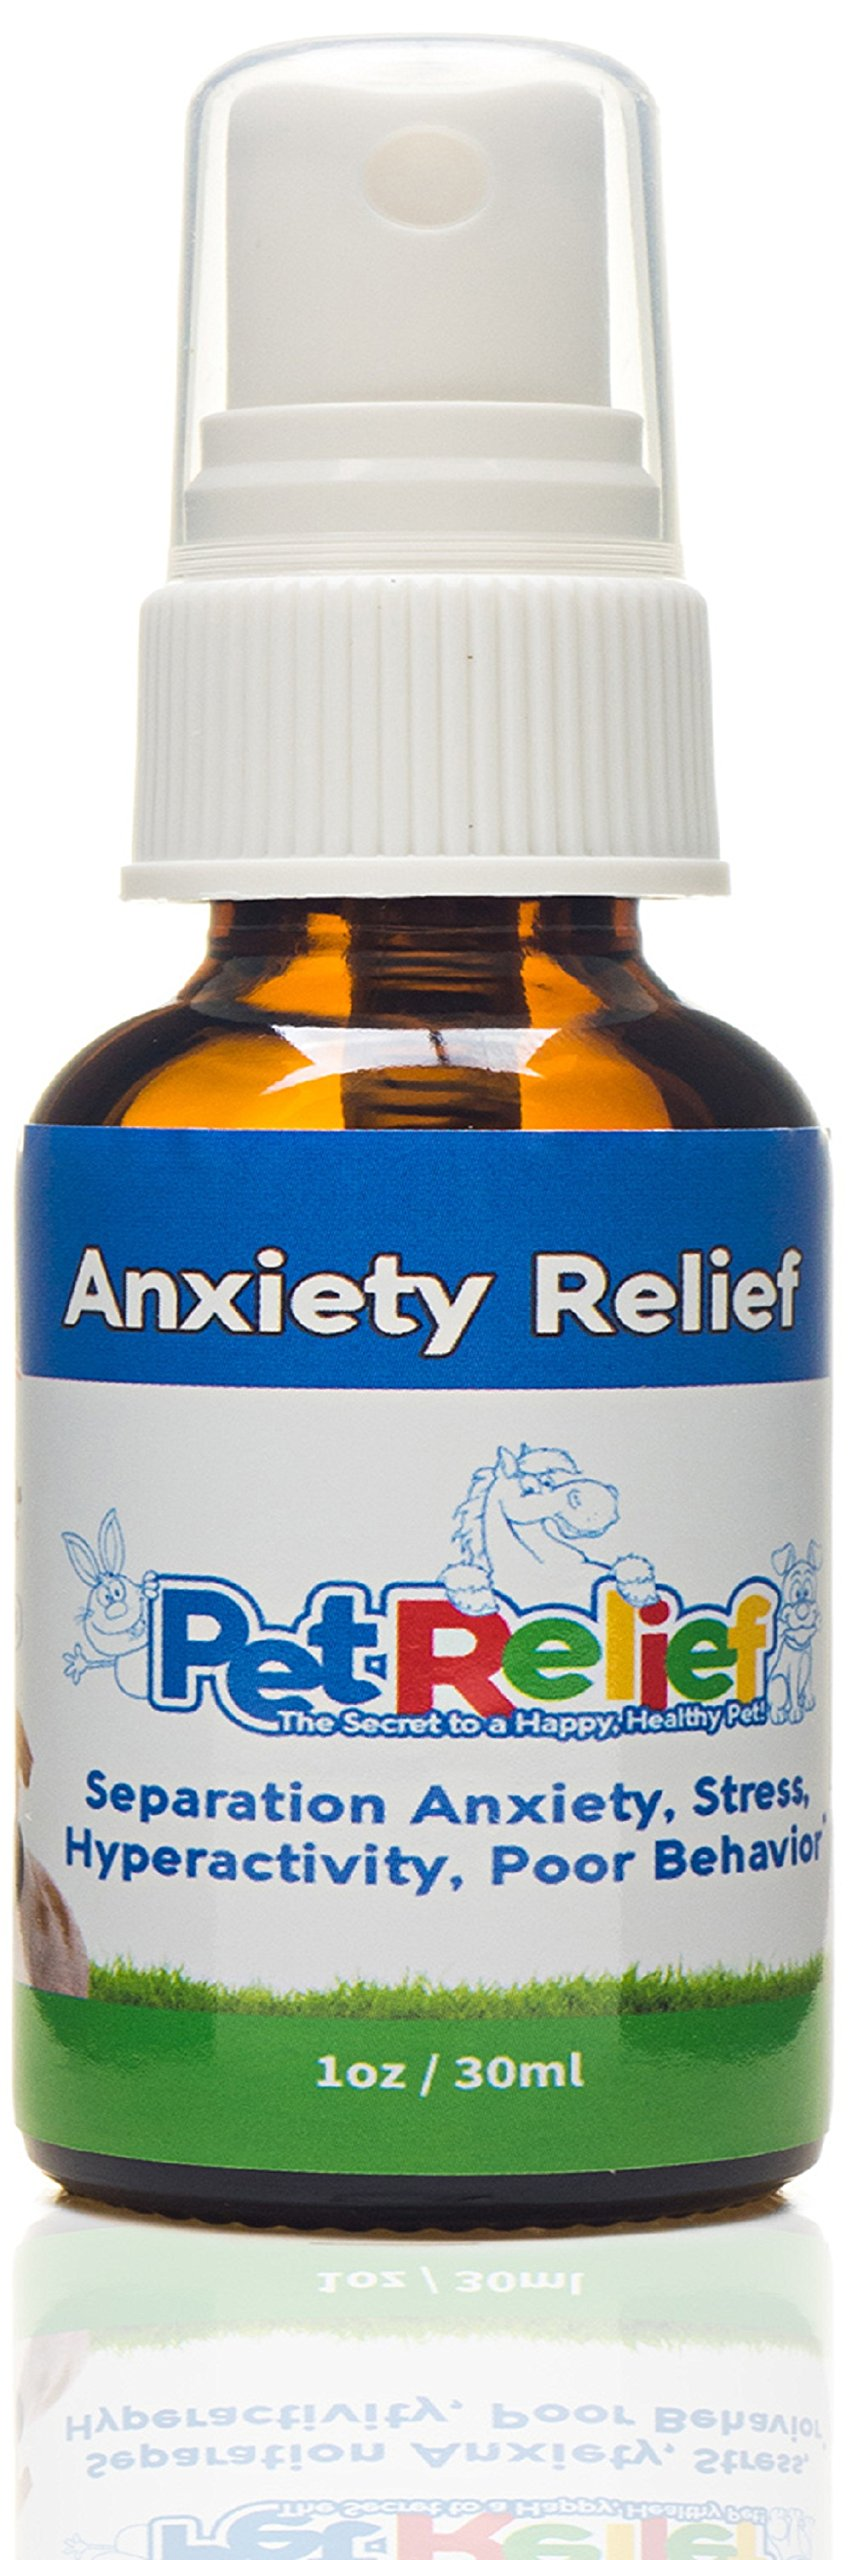 Dog Anxiety Relief - Soothes Dogs With Separation Anxiety - Lifetime Replacement Guarantee - 100% Natural - Helps Calm Barking, Obsessive Licking, Aggression, and Thunder Fear. 30ml. Made in USA